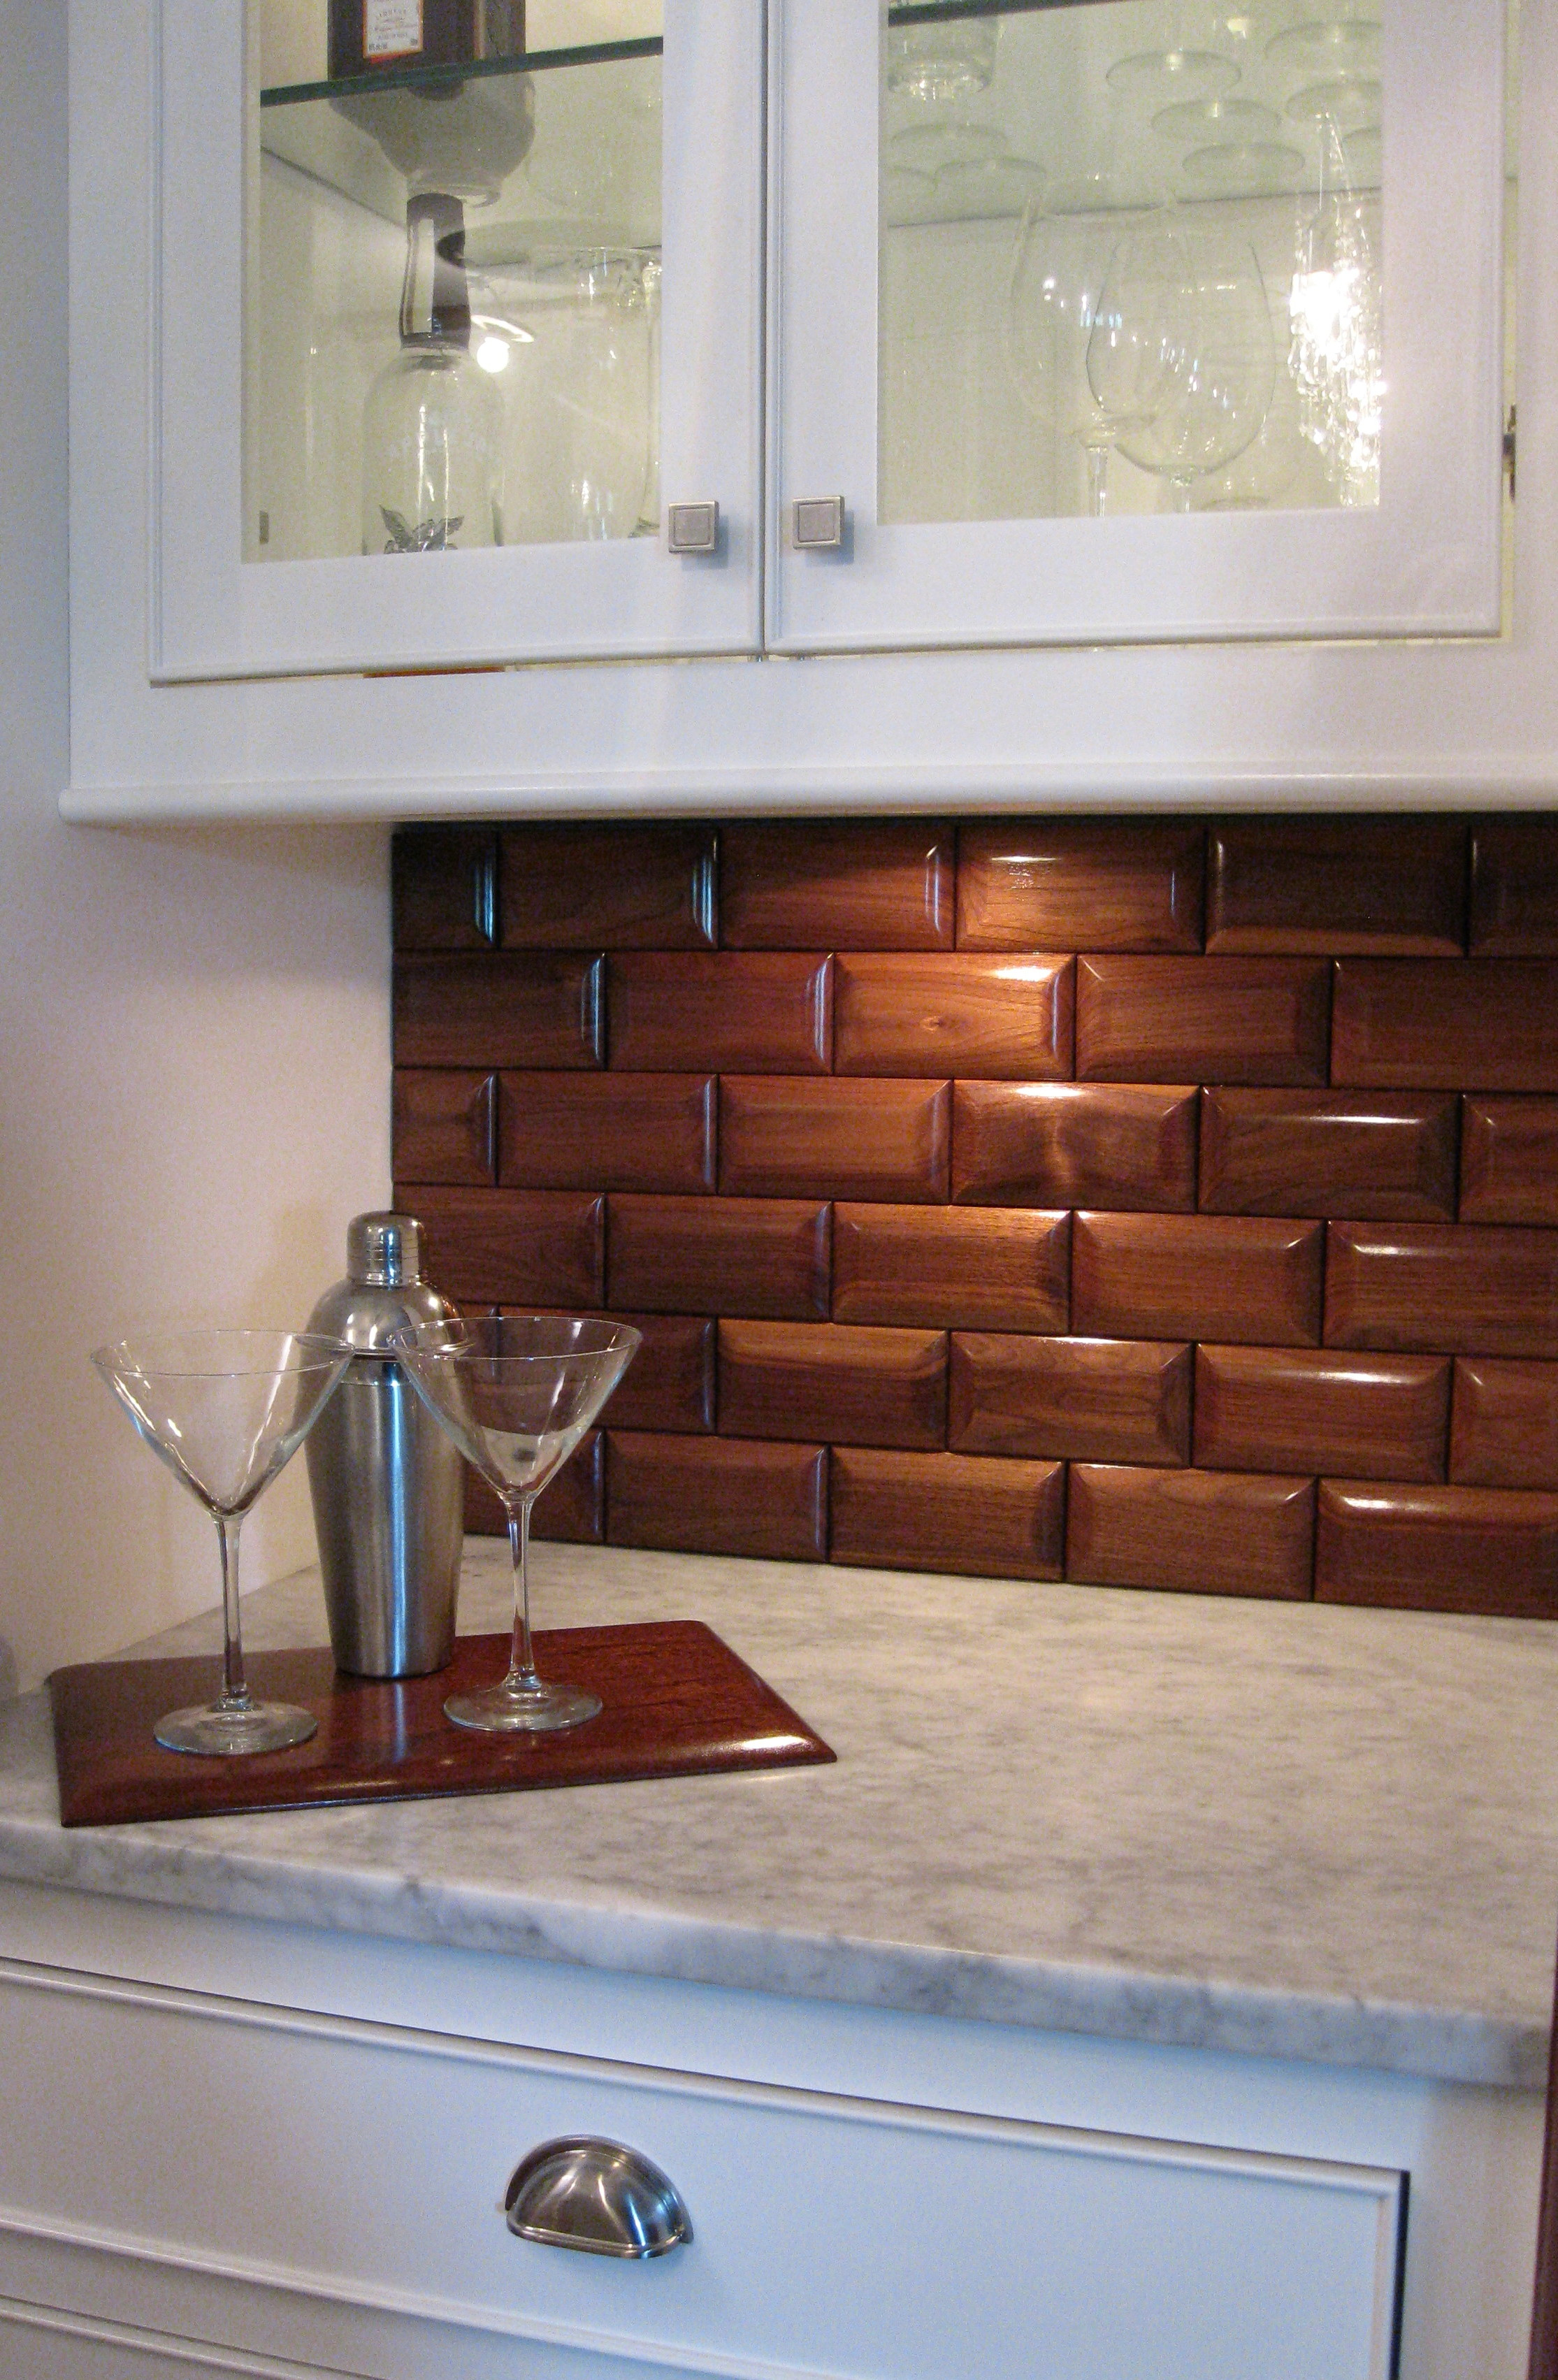 when you are going to install the subway tile subway tile has been